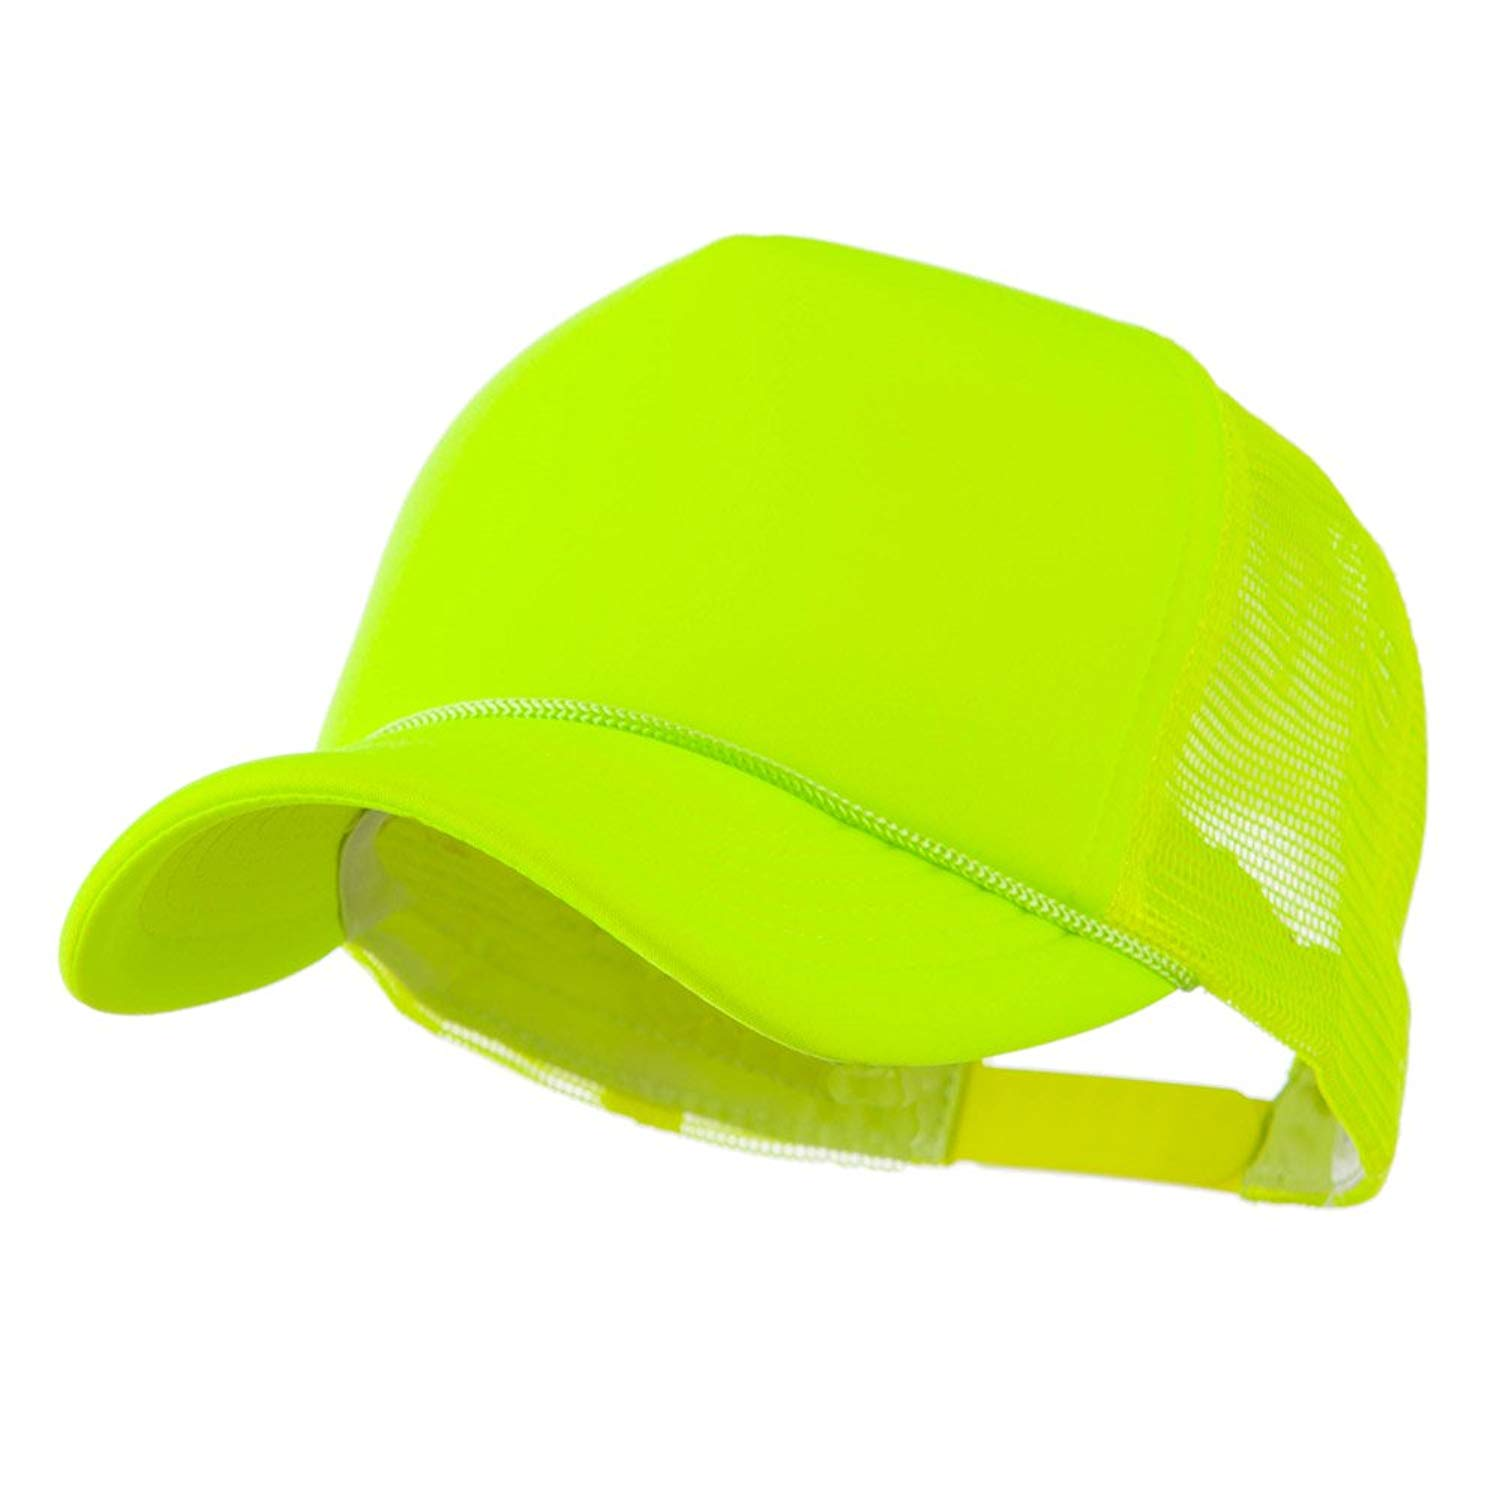 a72bc8c9bb6 Get Quotations · Neon Color Foam Front Summer Trucker Cap - Neon Yellow